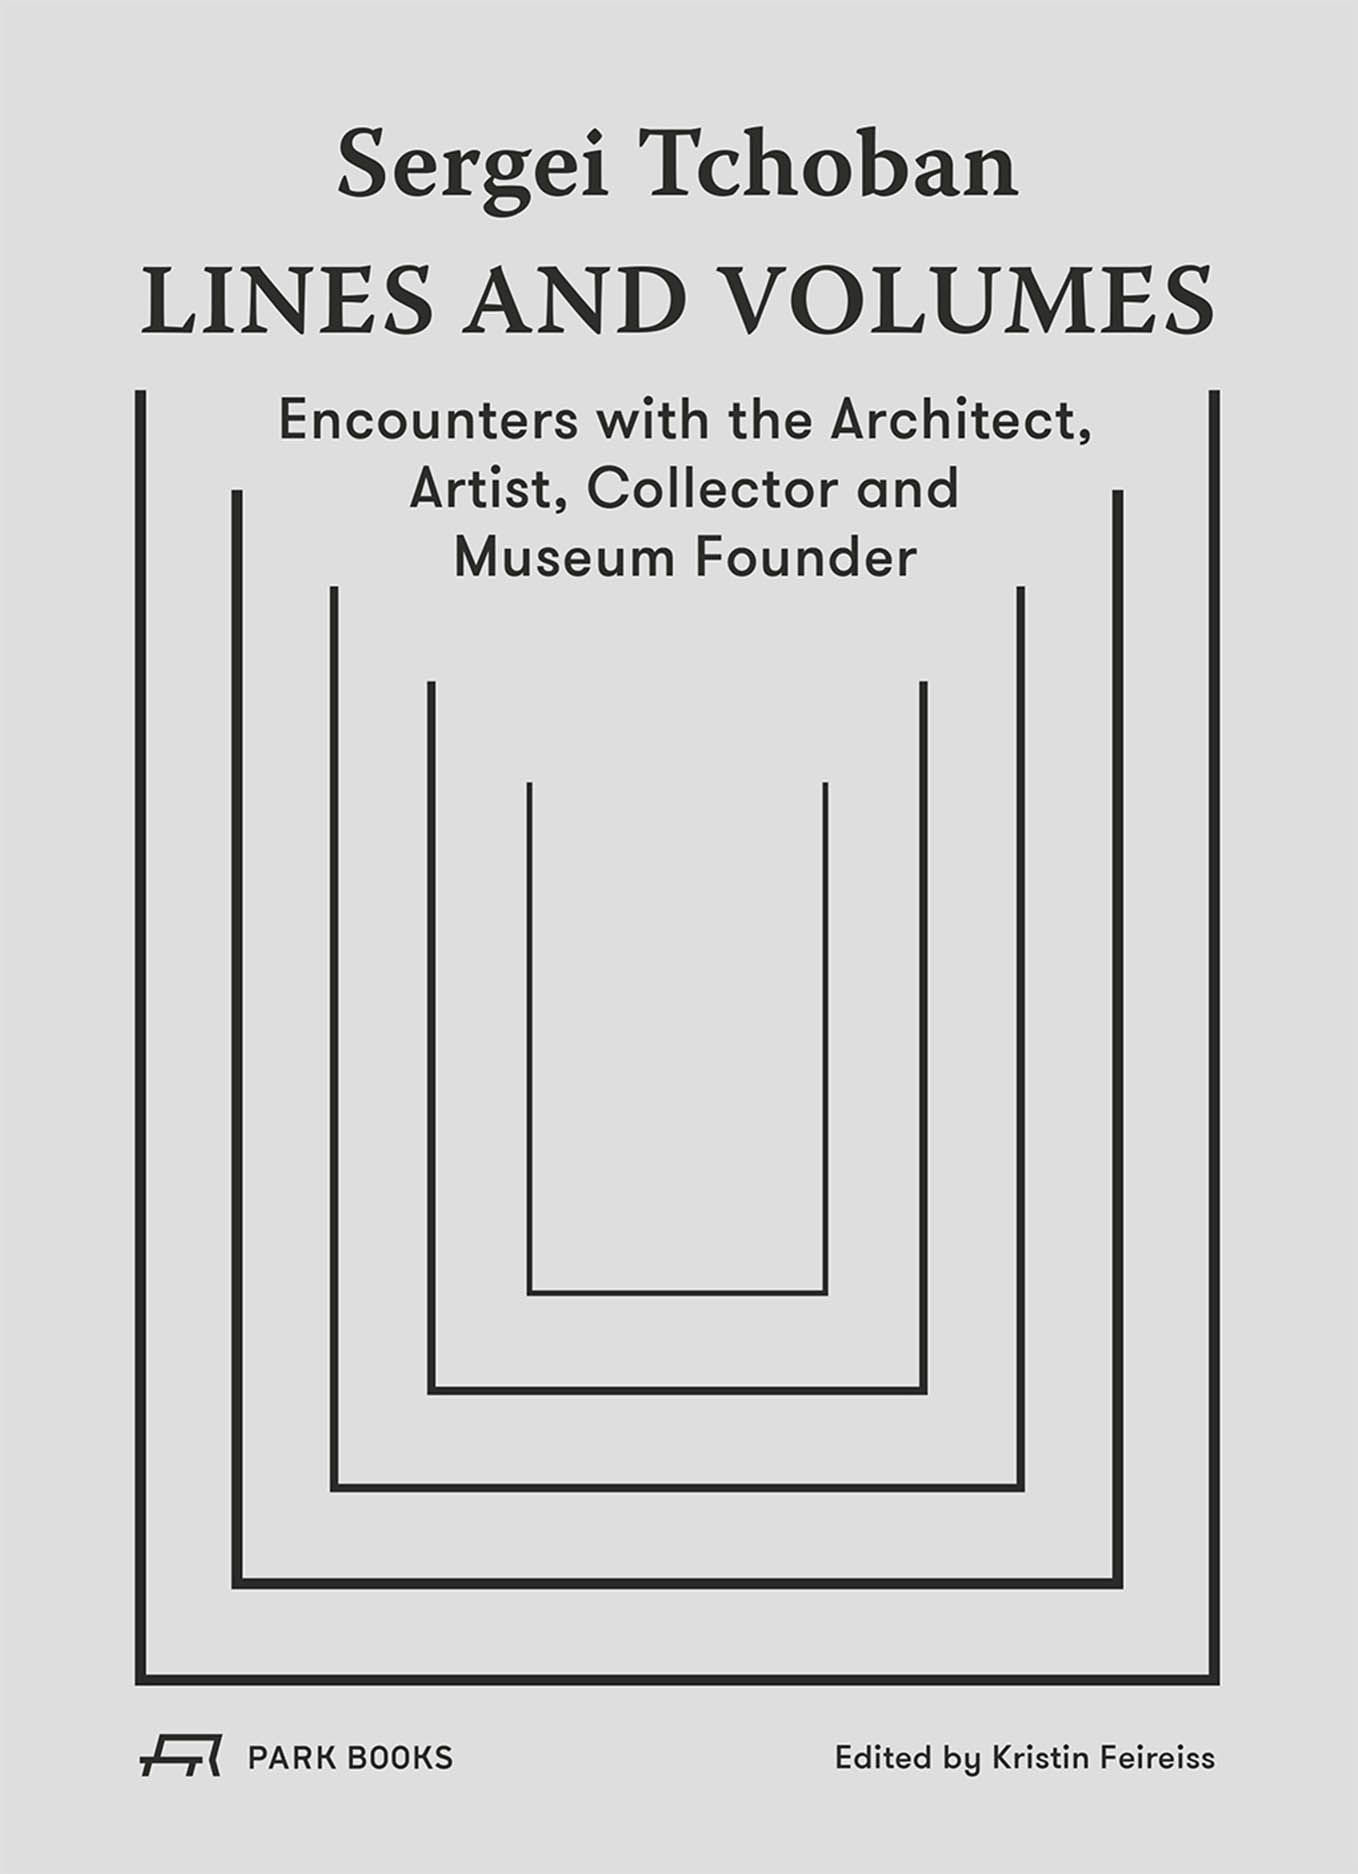 Sergei Tchoban—Lines and Volumes: Encounters with the Architect, Artist, Collector and Museum Founder